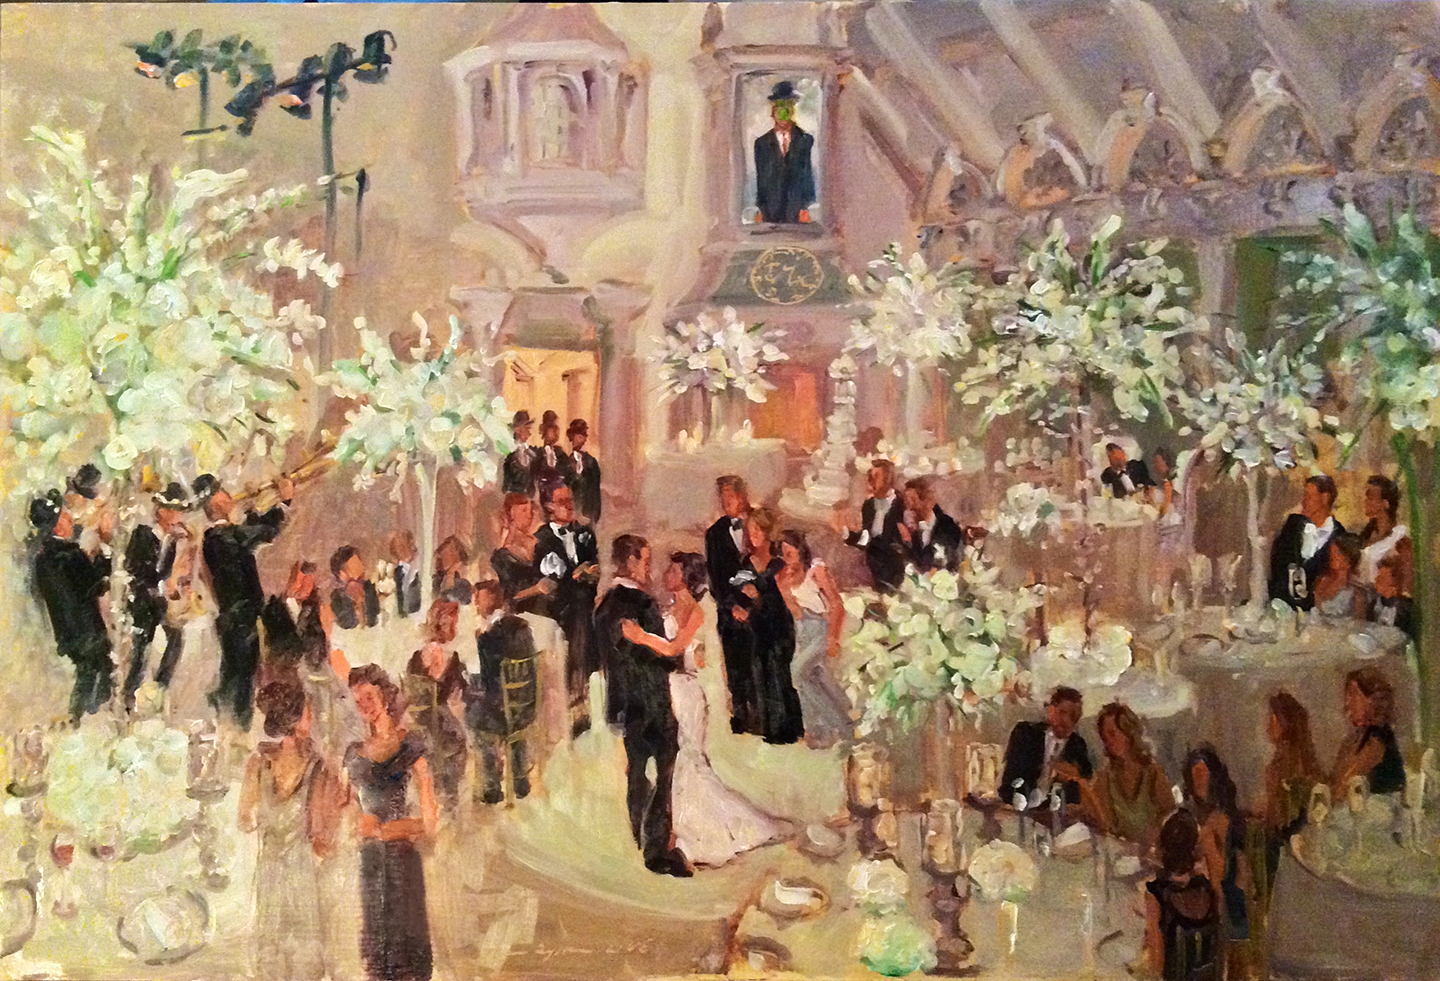 Estate weddings in nj - Live Wedding Painting At The Ashford Estate Nj With Men In Bowler Hats From The Thomas